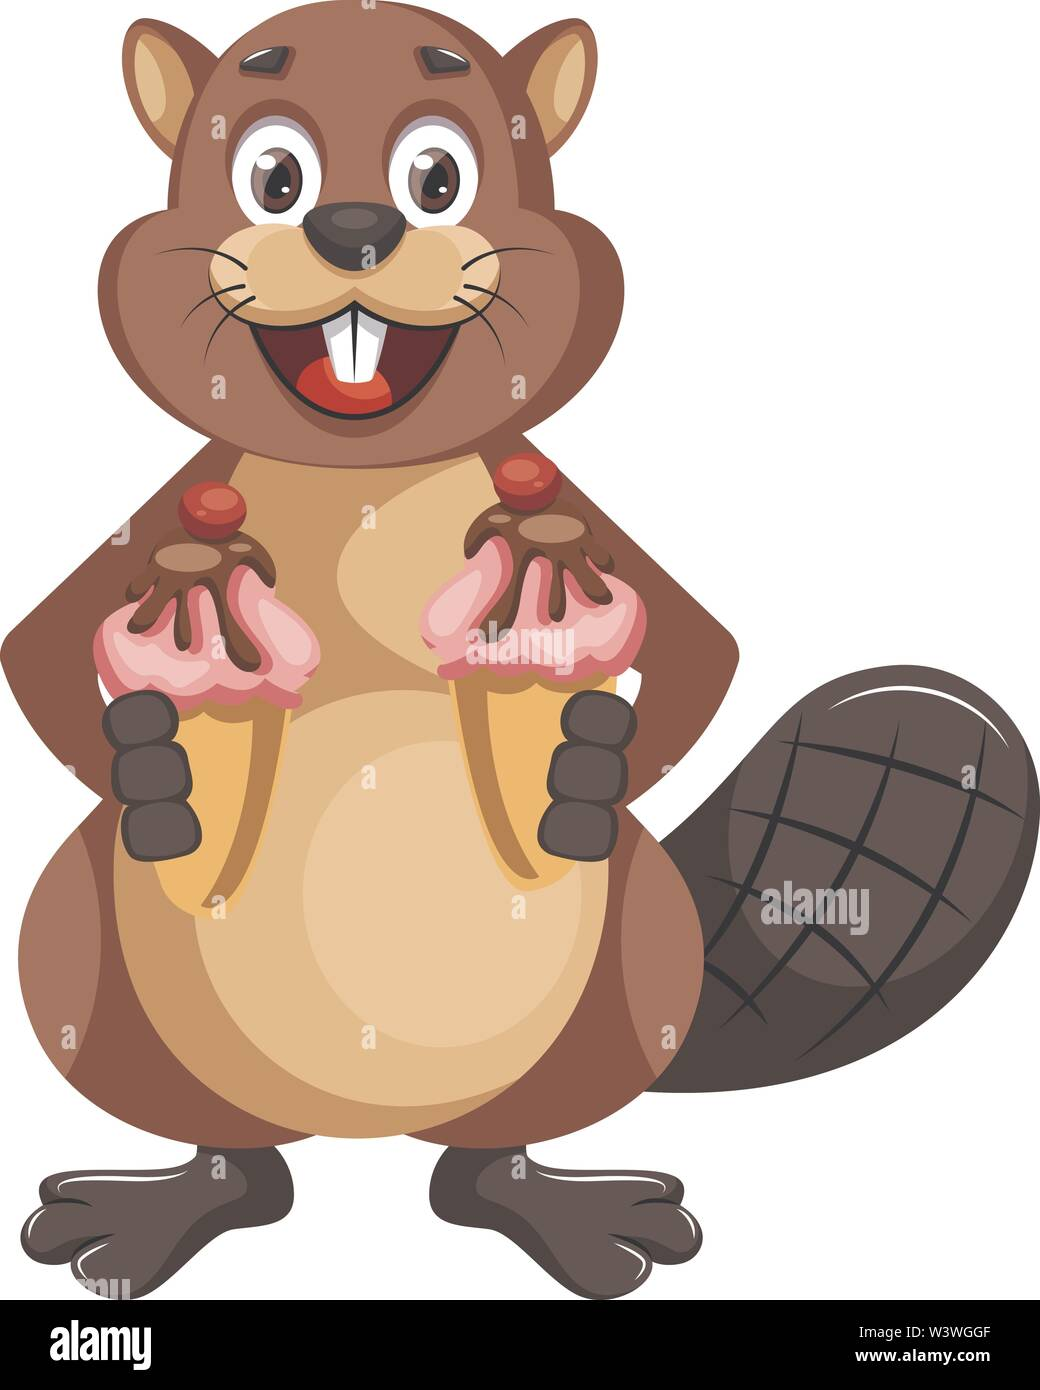 Beaver with cupcakes, illustration, vector on white background. - Stock Image